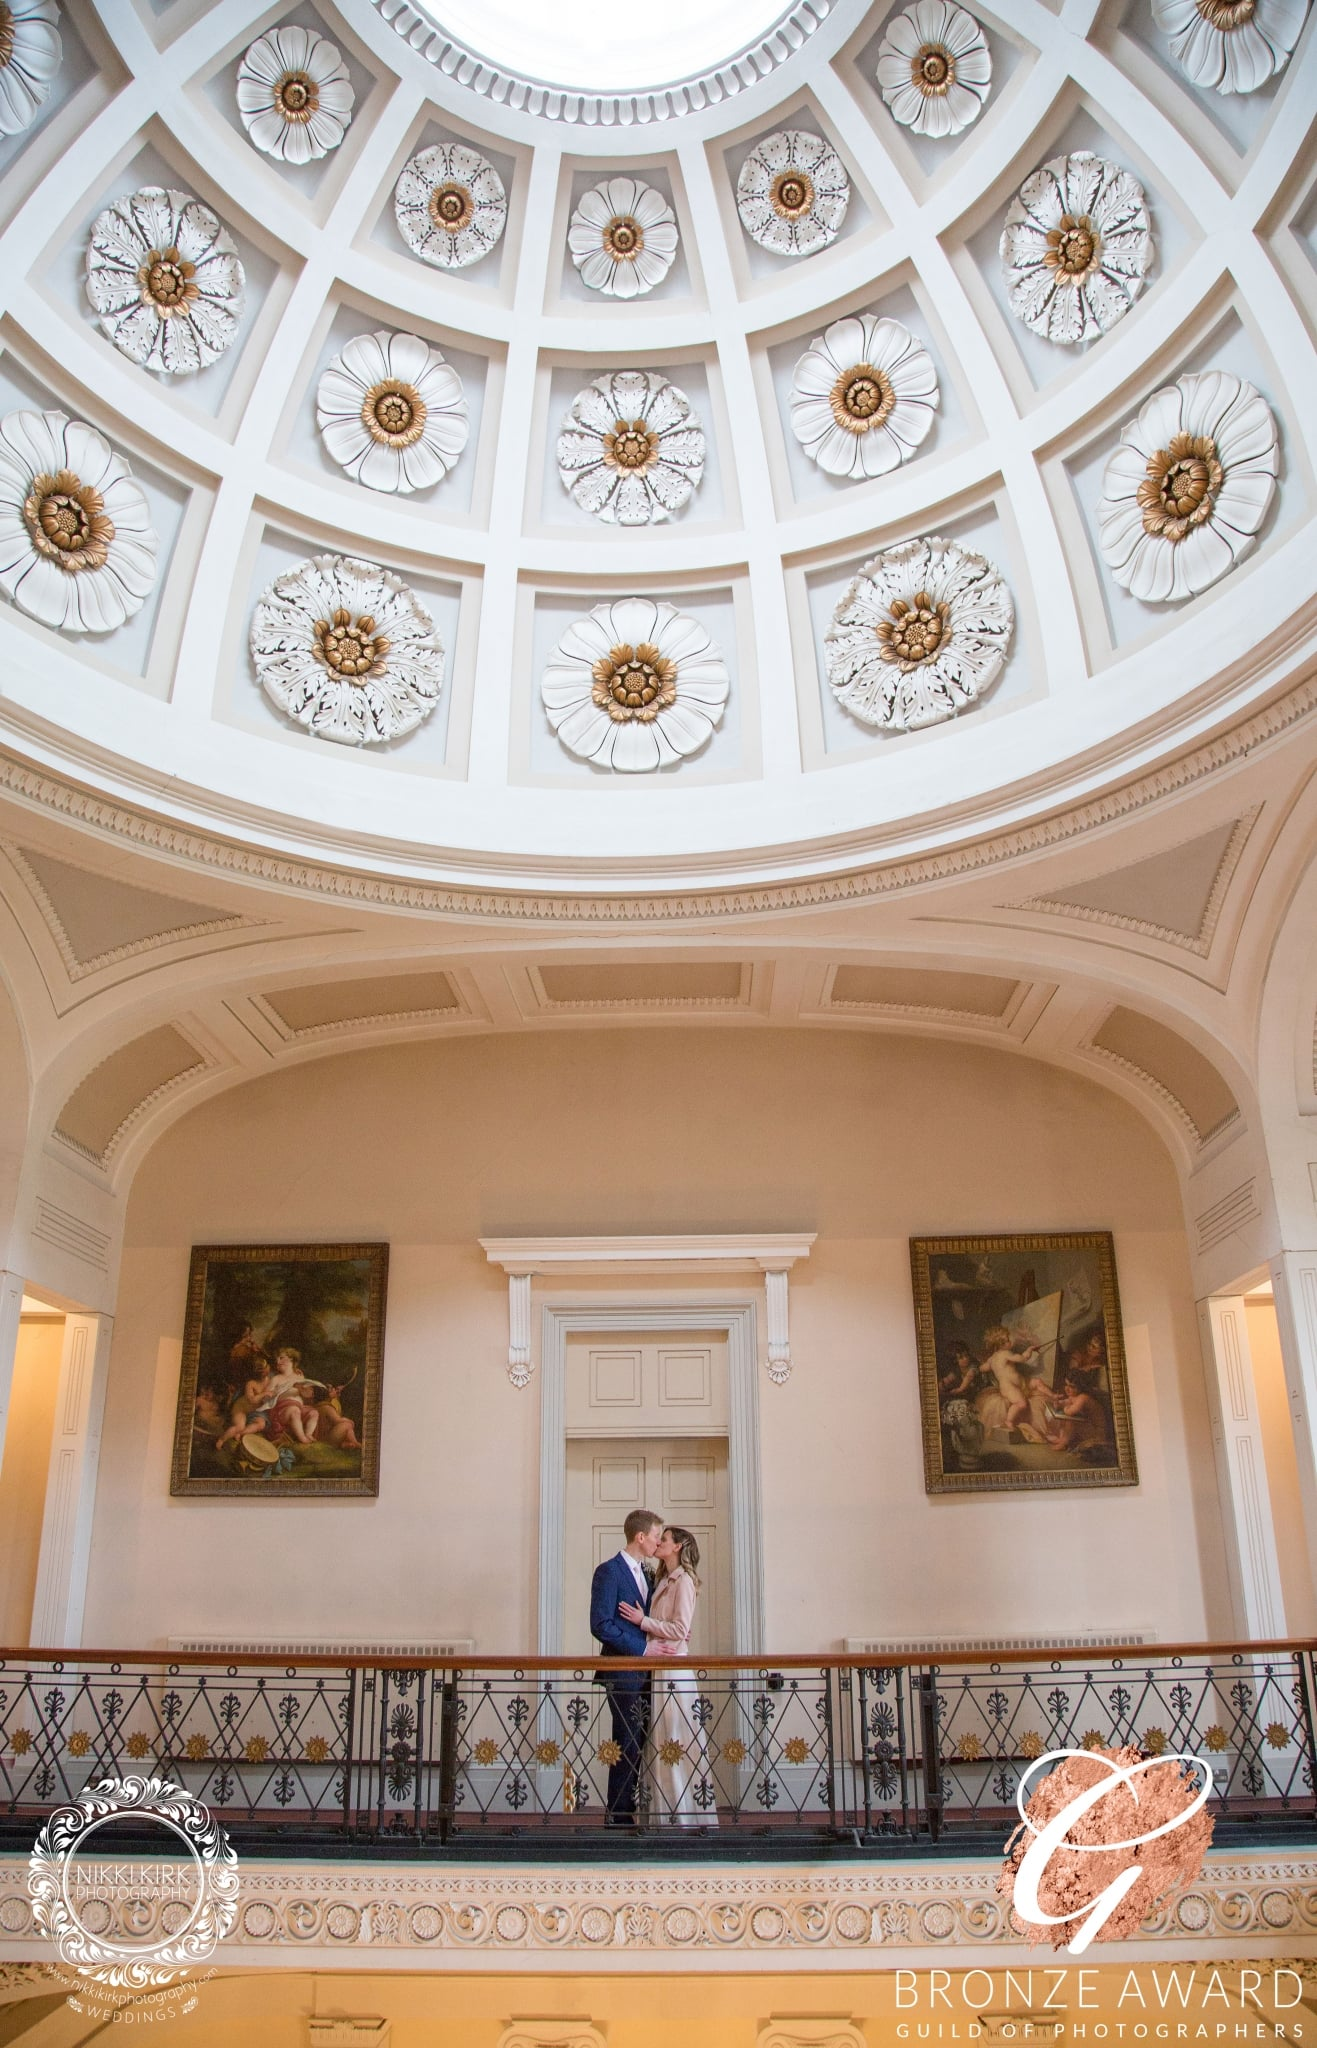 Pittville Pump Room Wedding Award Winning Photograph